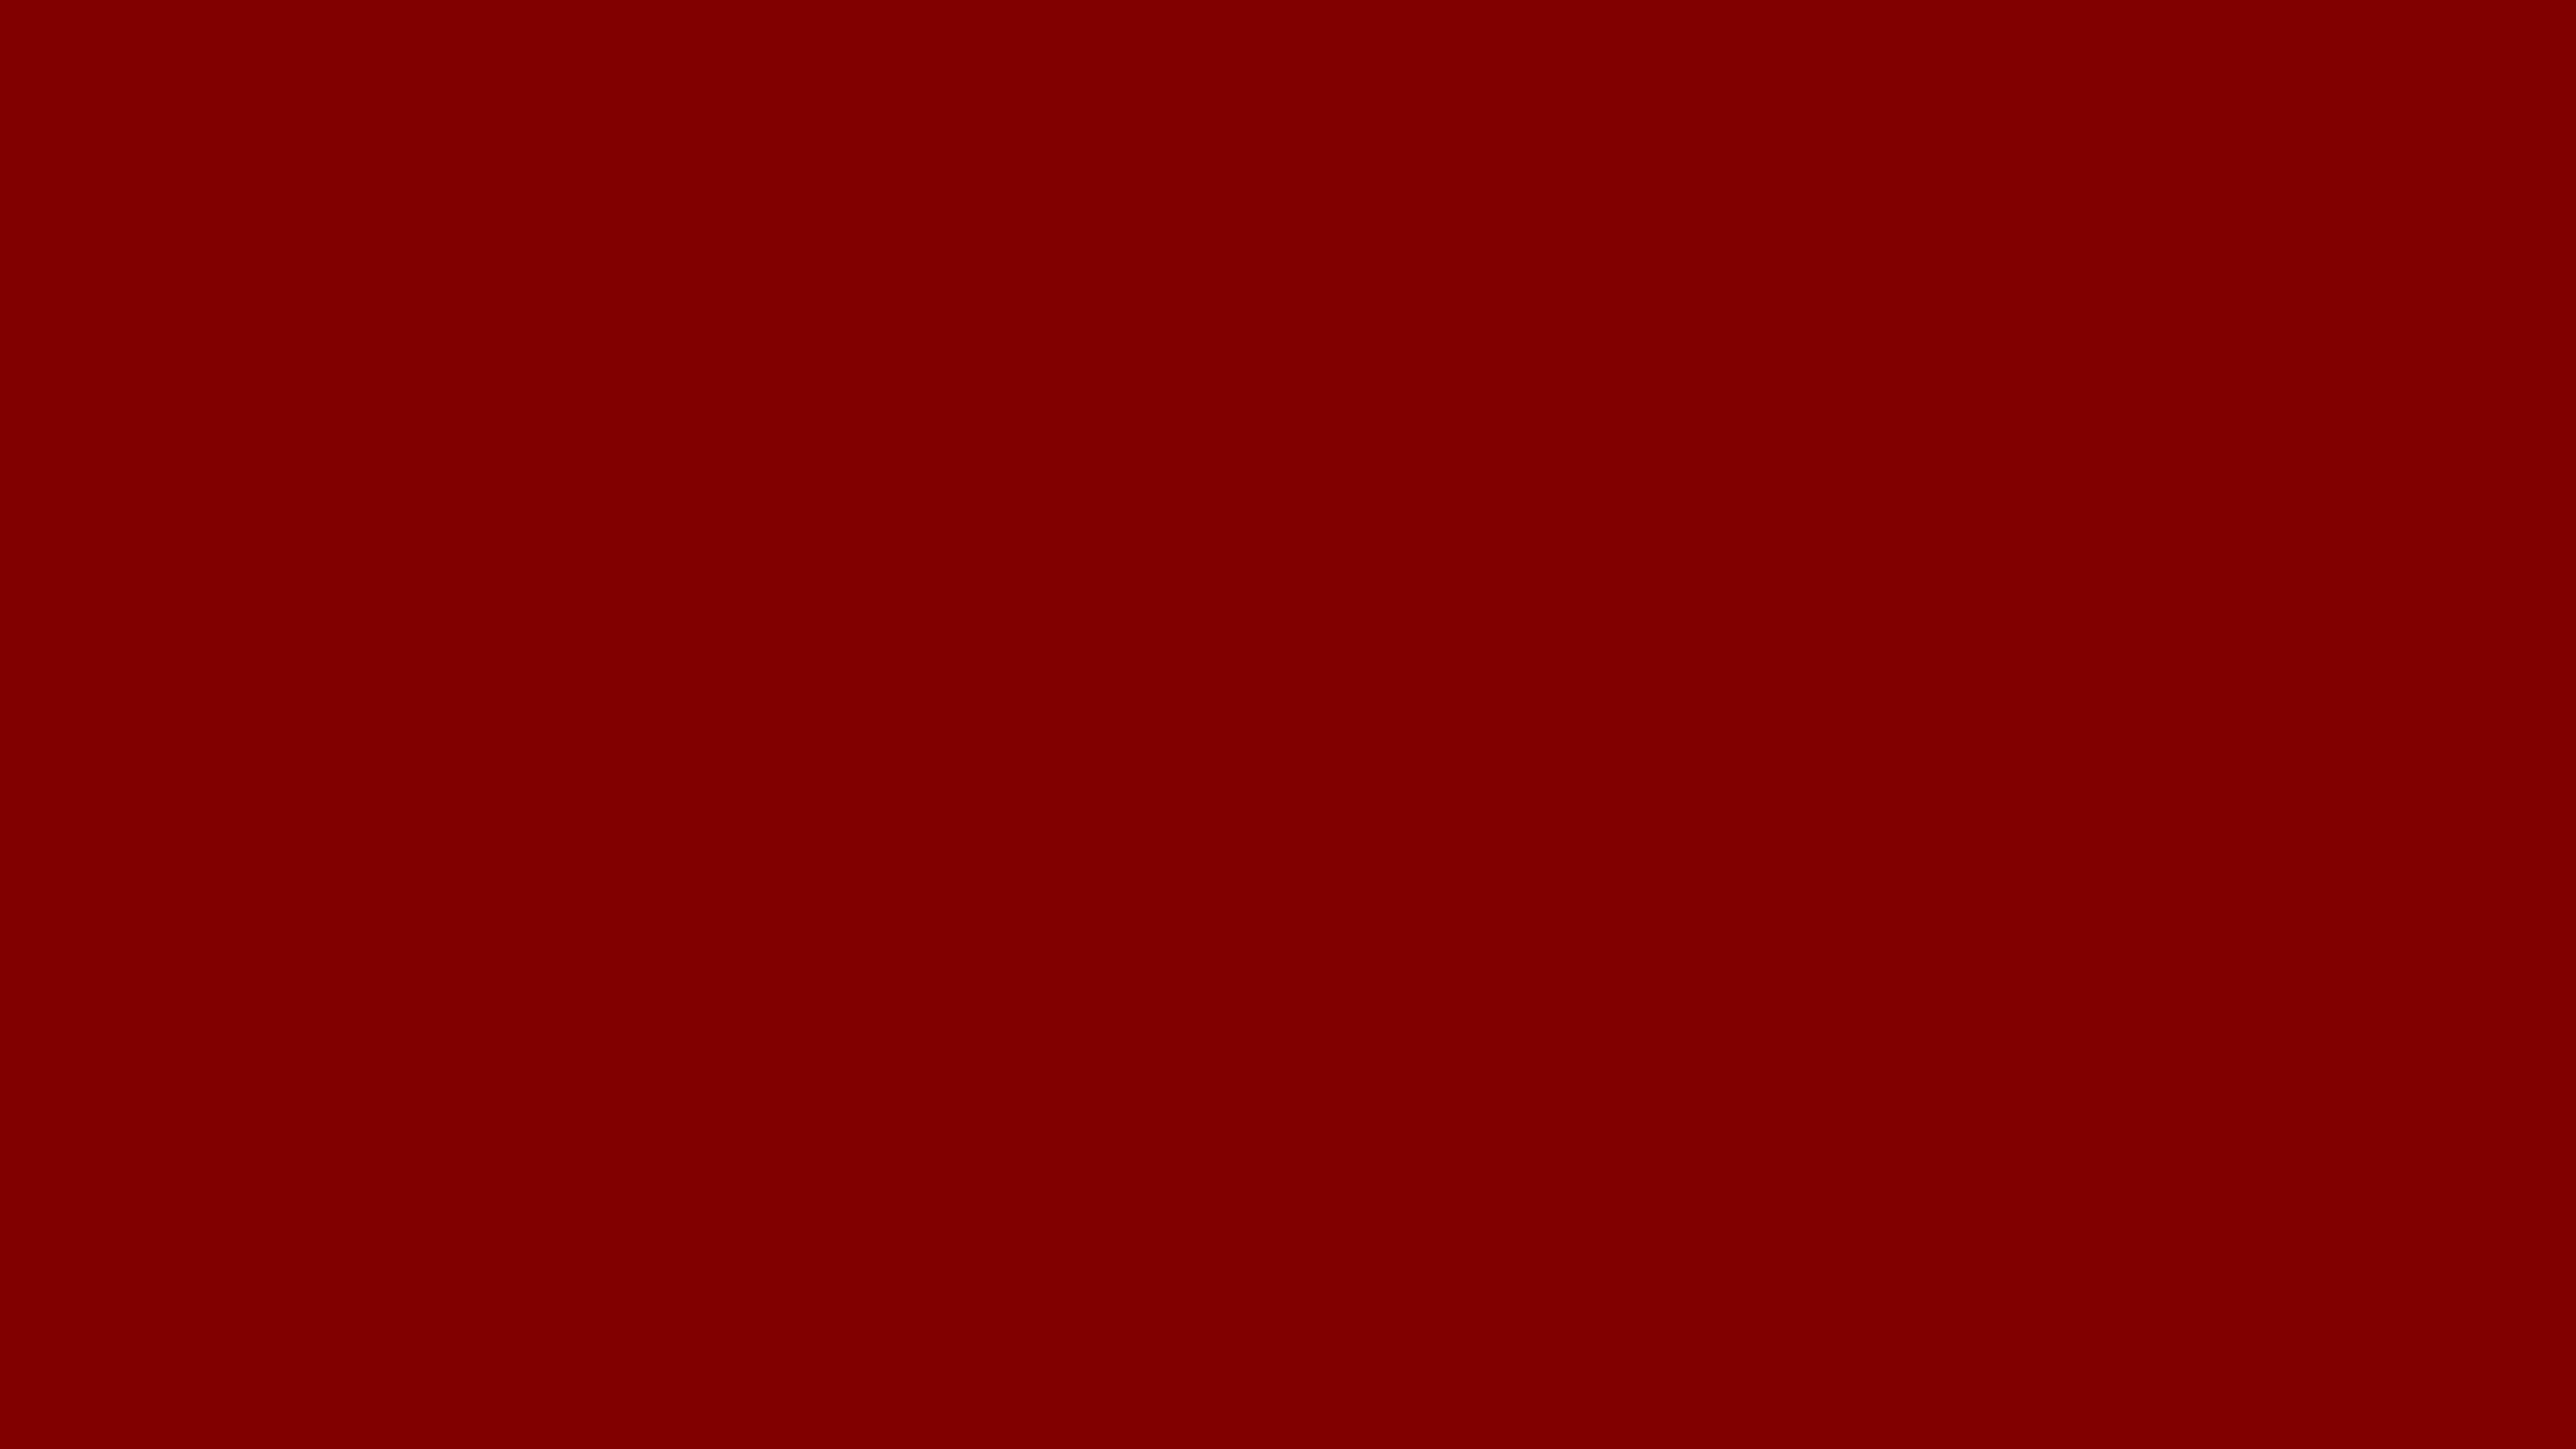 3840x2160 Maroon Web Solid Color Background